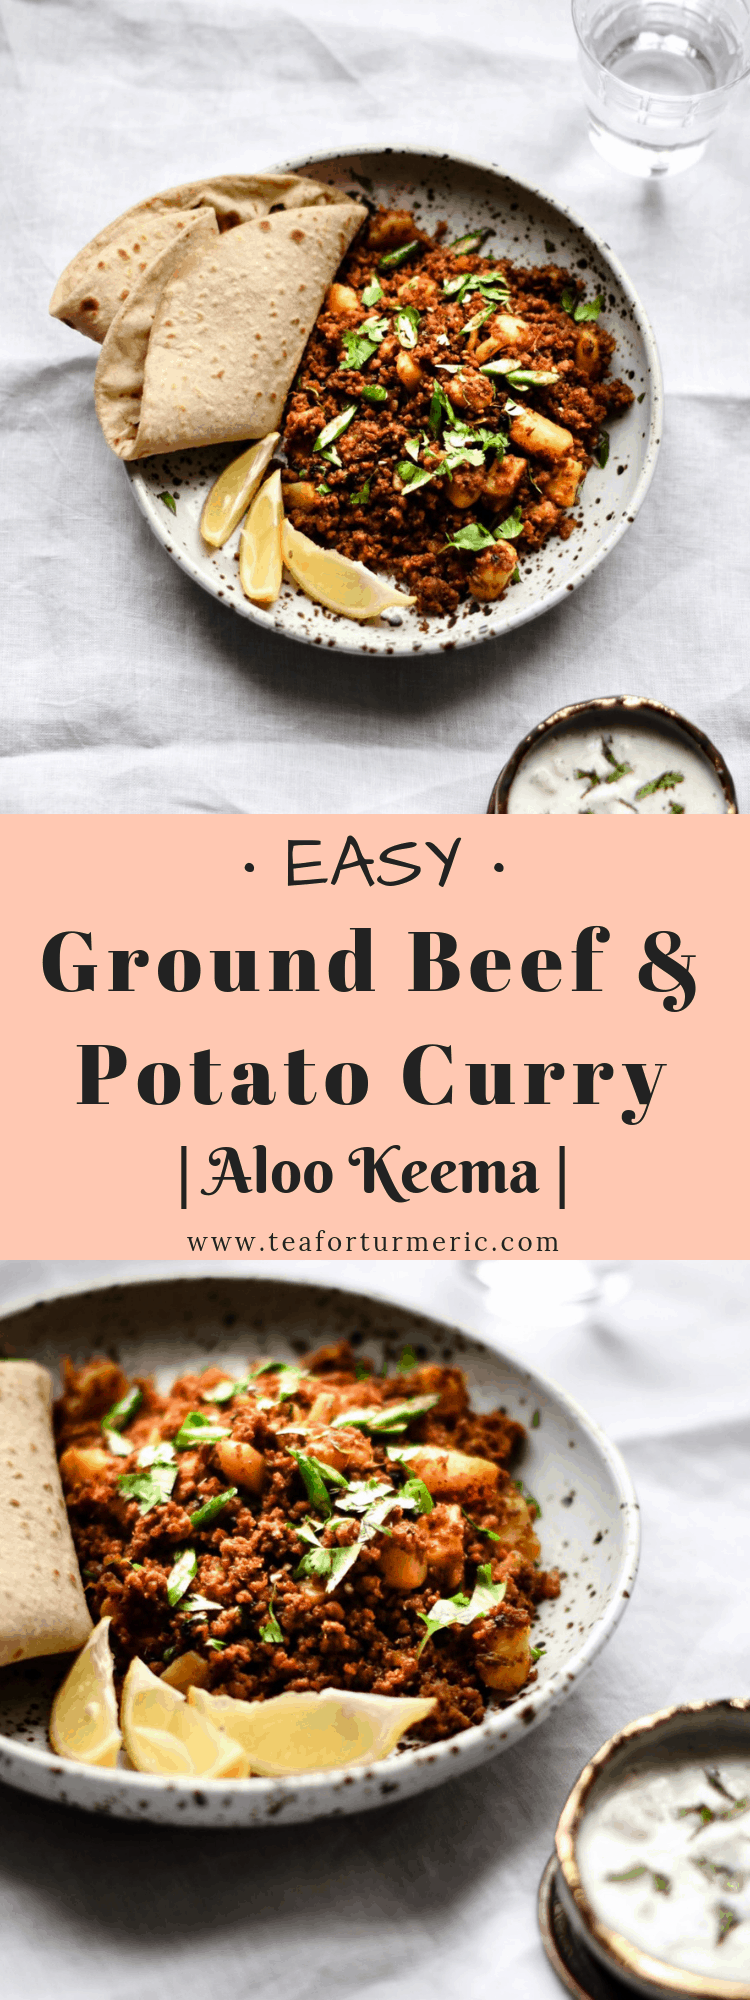 Authentic, homestyle, Pakistani and North Indian style Ground Beef and Potato curry - Aloo Keema. This is a one-pot recipe that\'s simple, easy-to-make, and gives the most flavorful results!